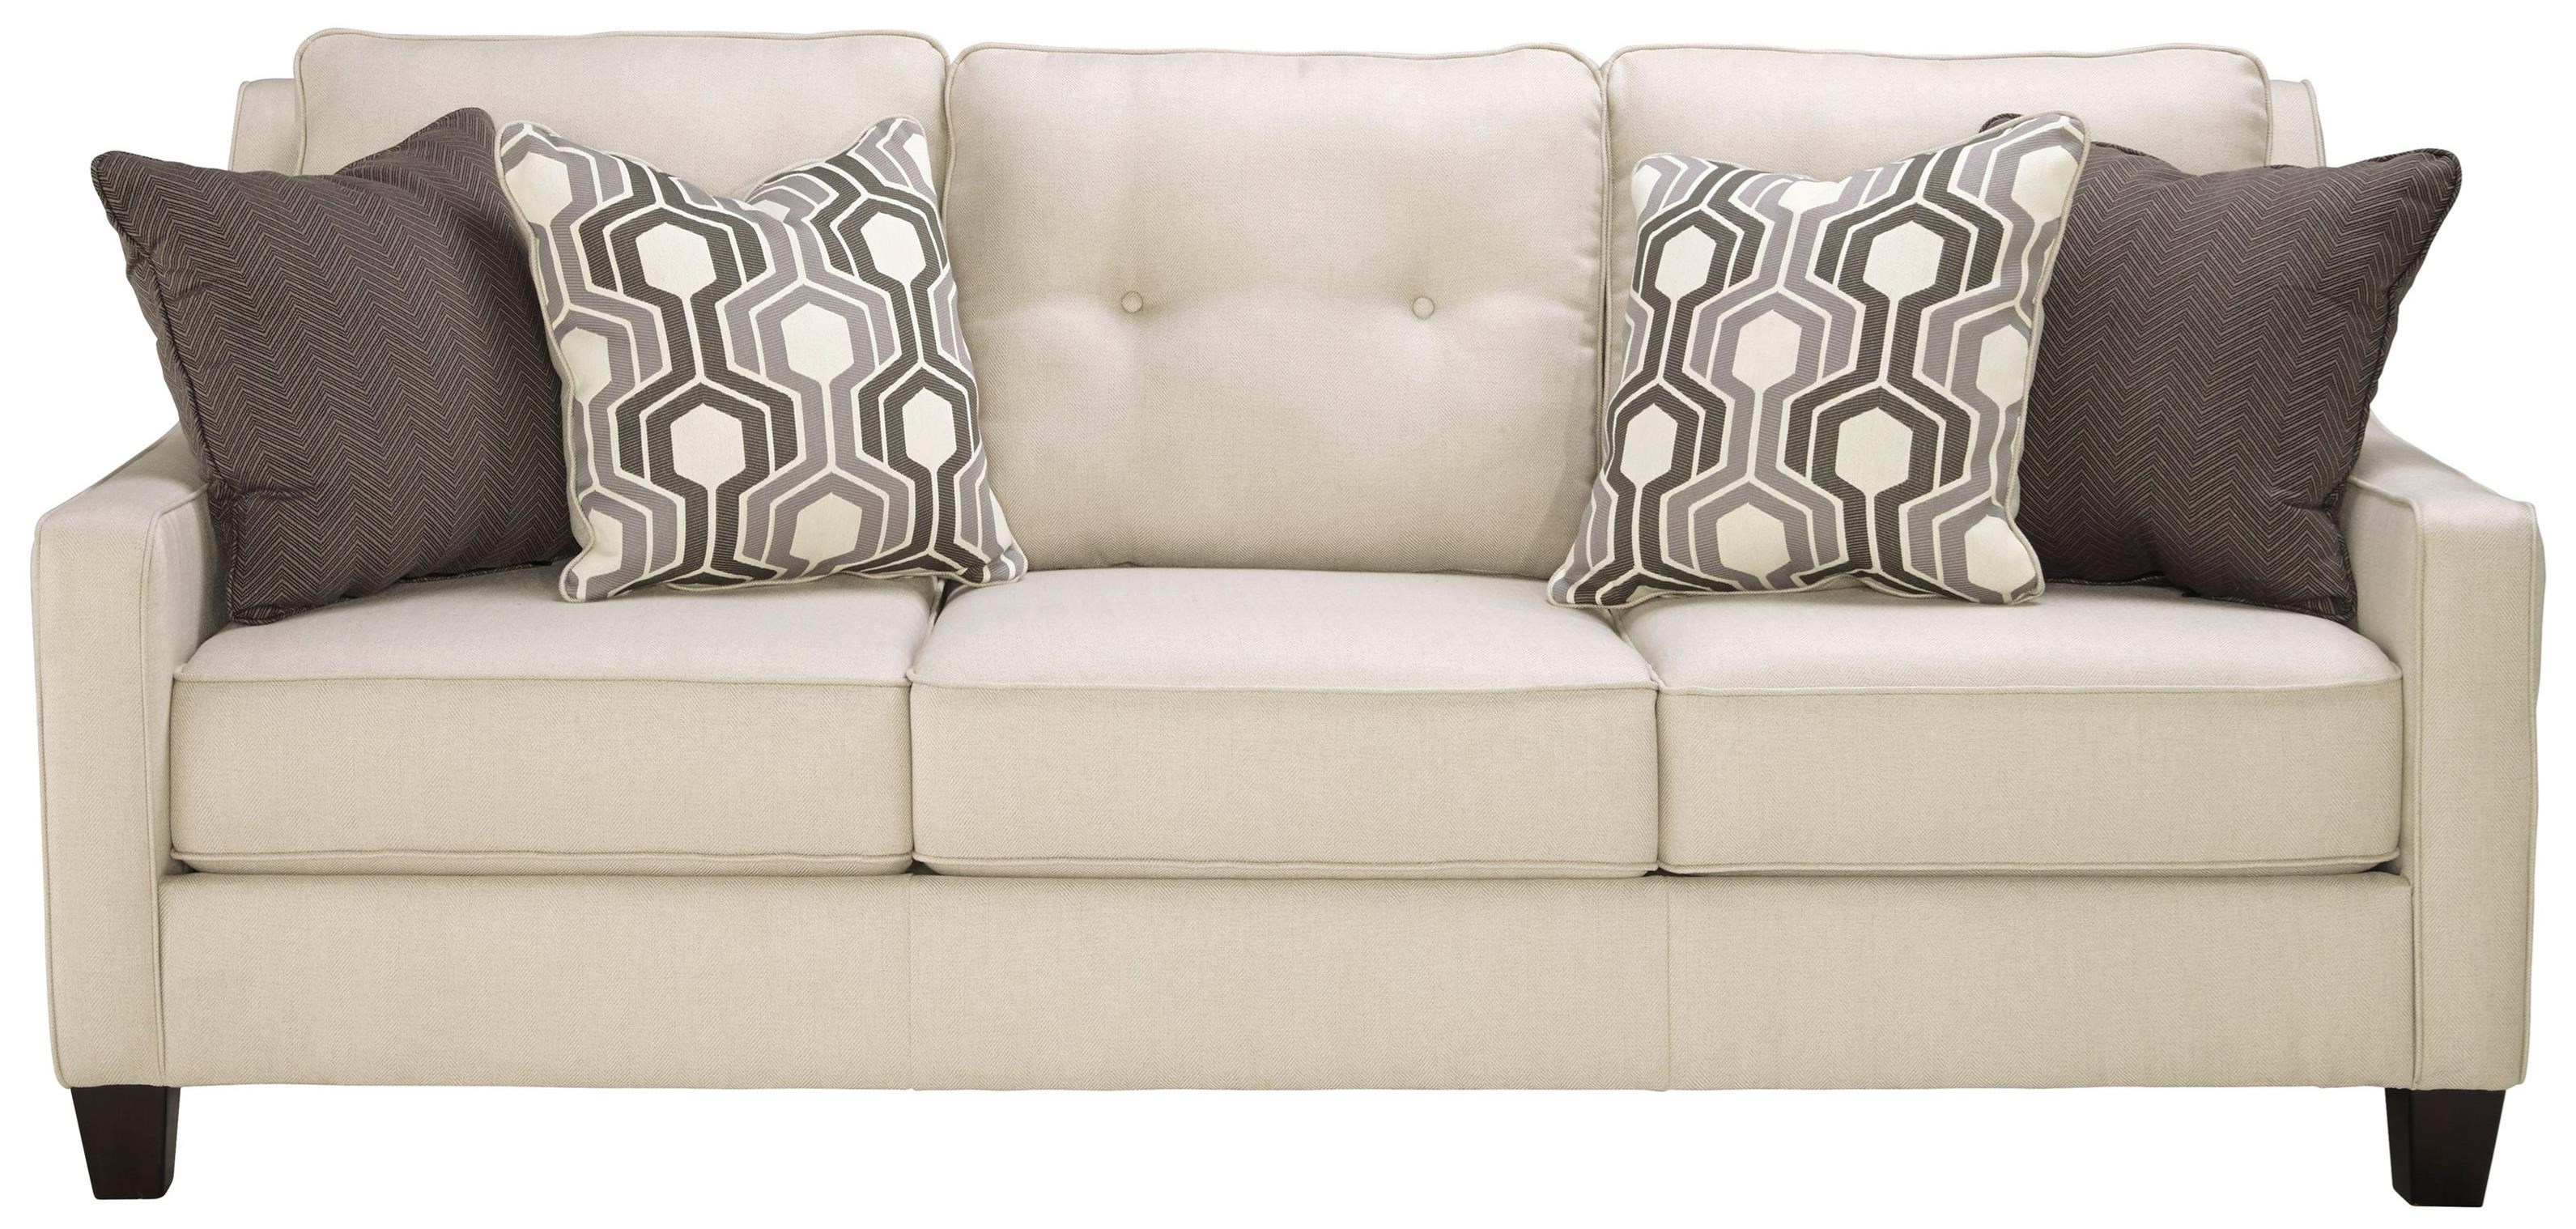 Benchcraft By Ashley Guillerno Contemporary Sofa With Coil